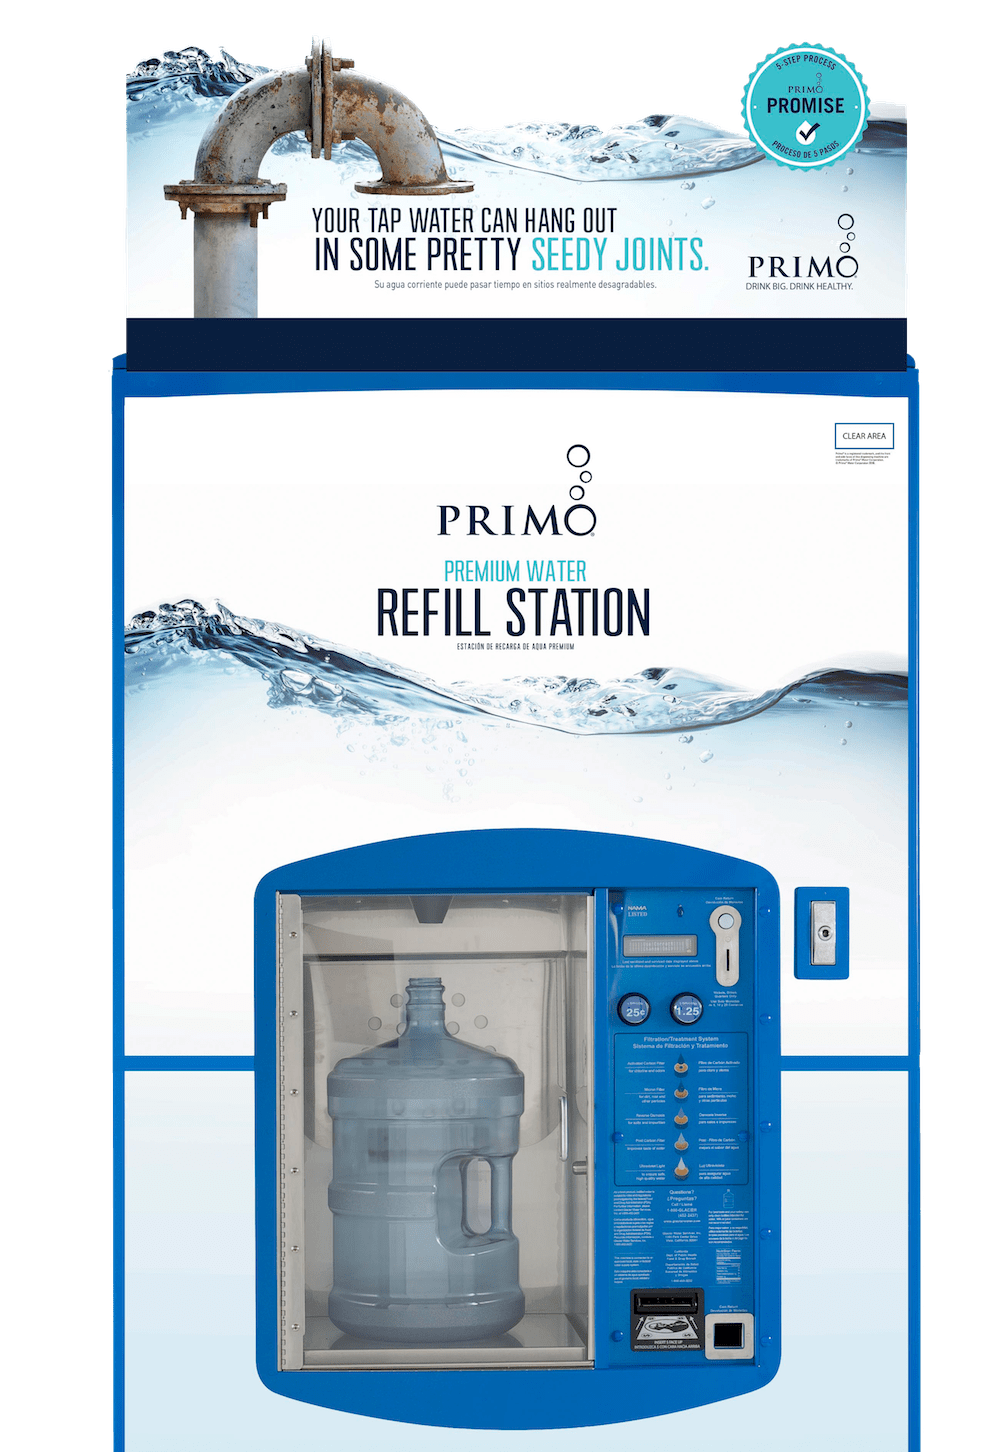 Primo Premium water refill station